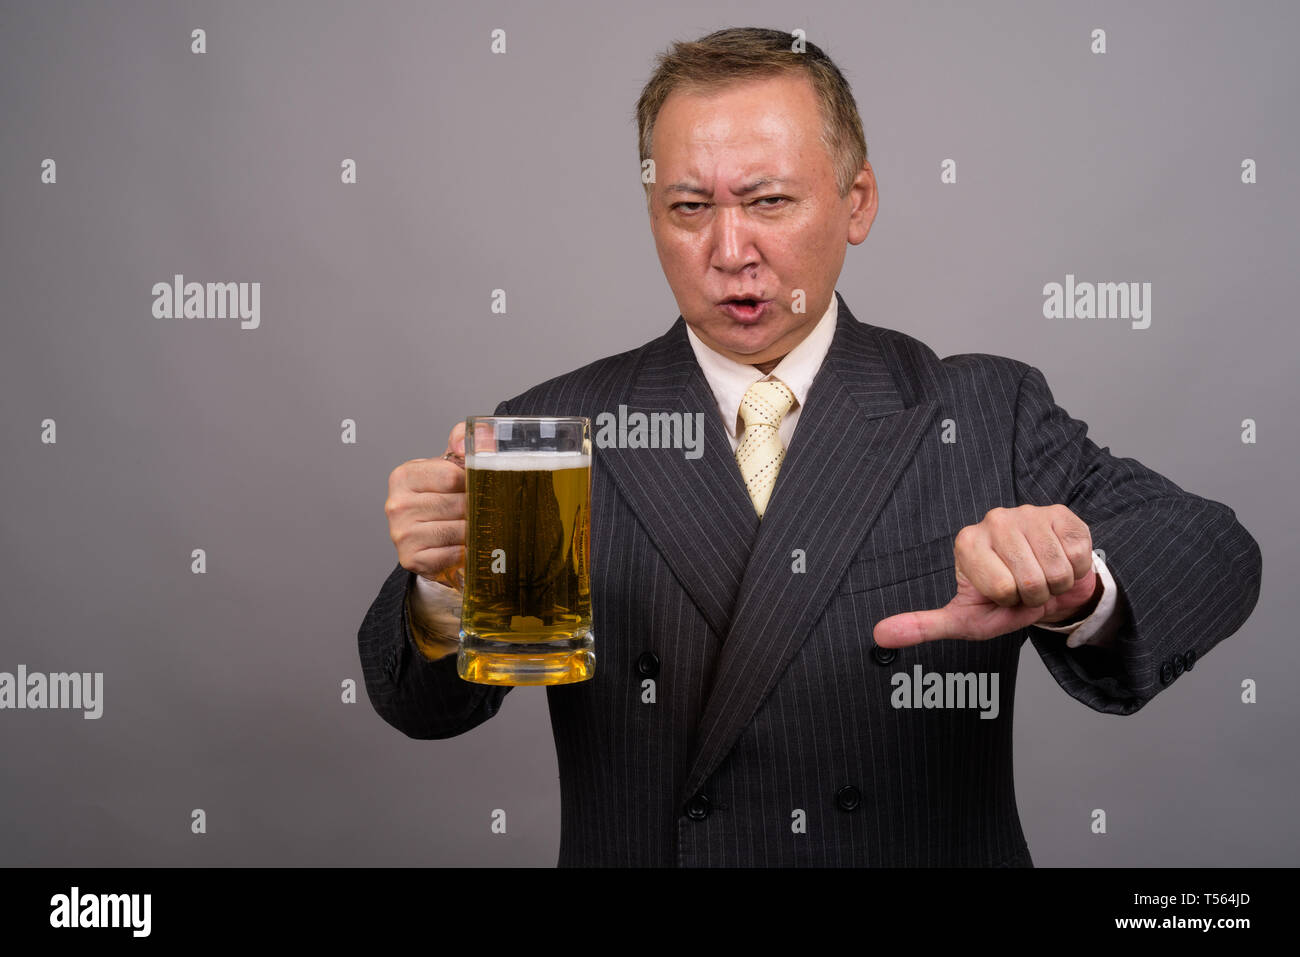 Portrait of mature Asian businessman against gray background - Stock Image